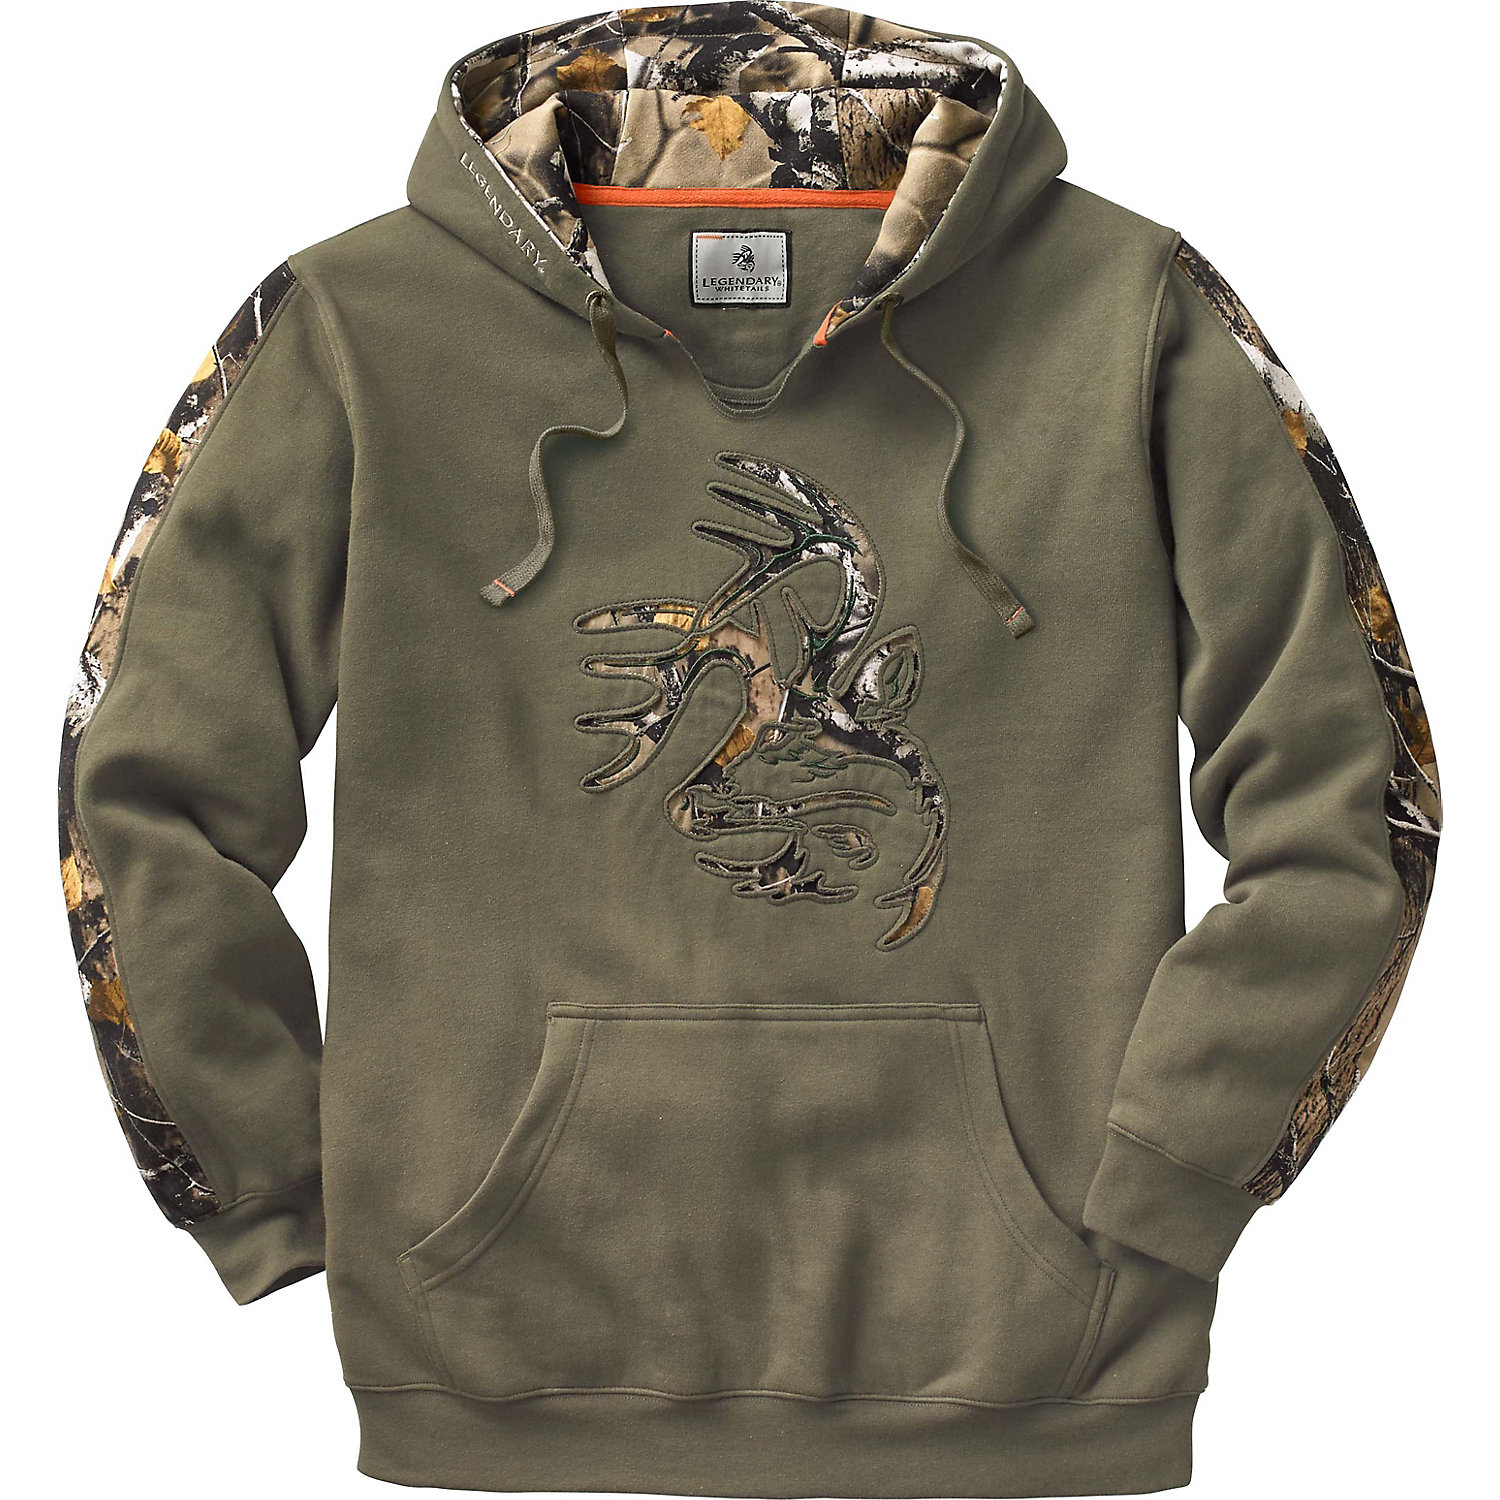 Find great deals on eBay for Mens Camo Hoodie in Men's Sweats and Hoodies. Shop with confidence.